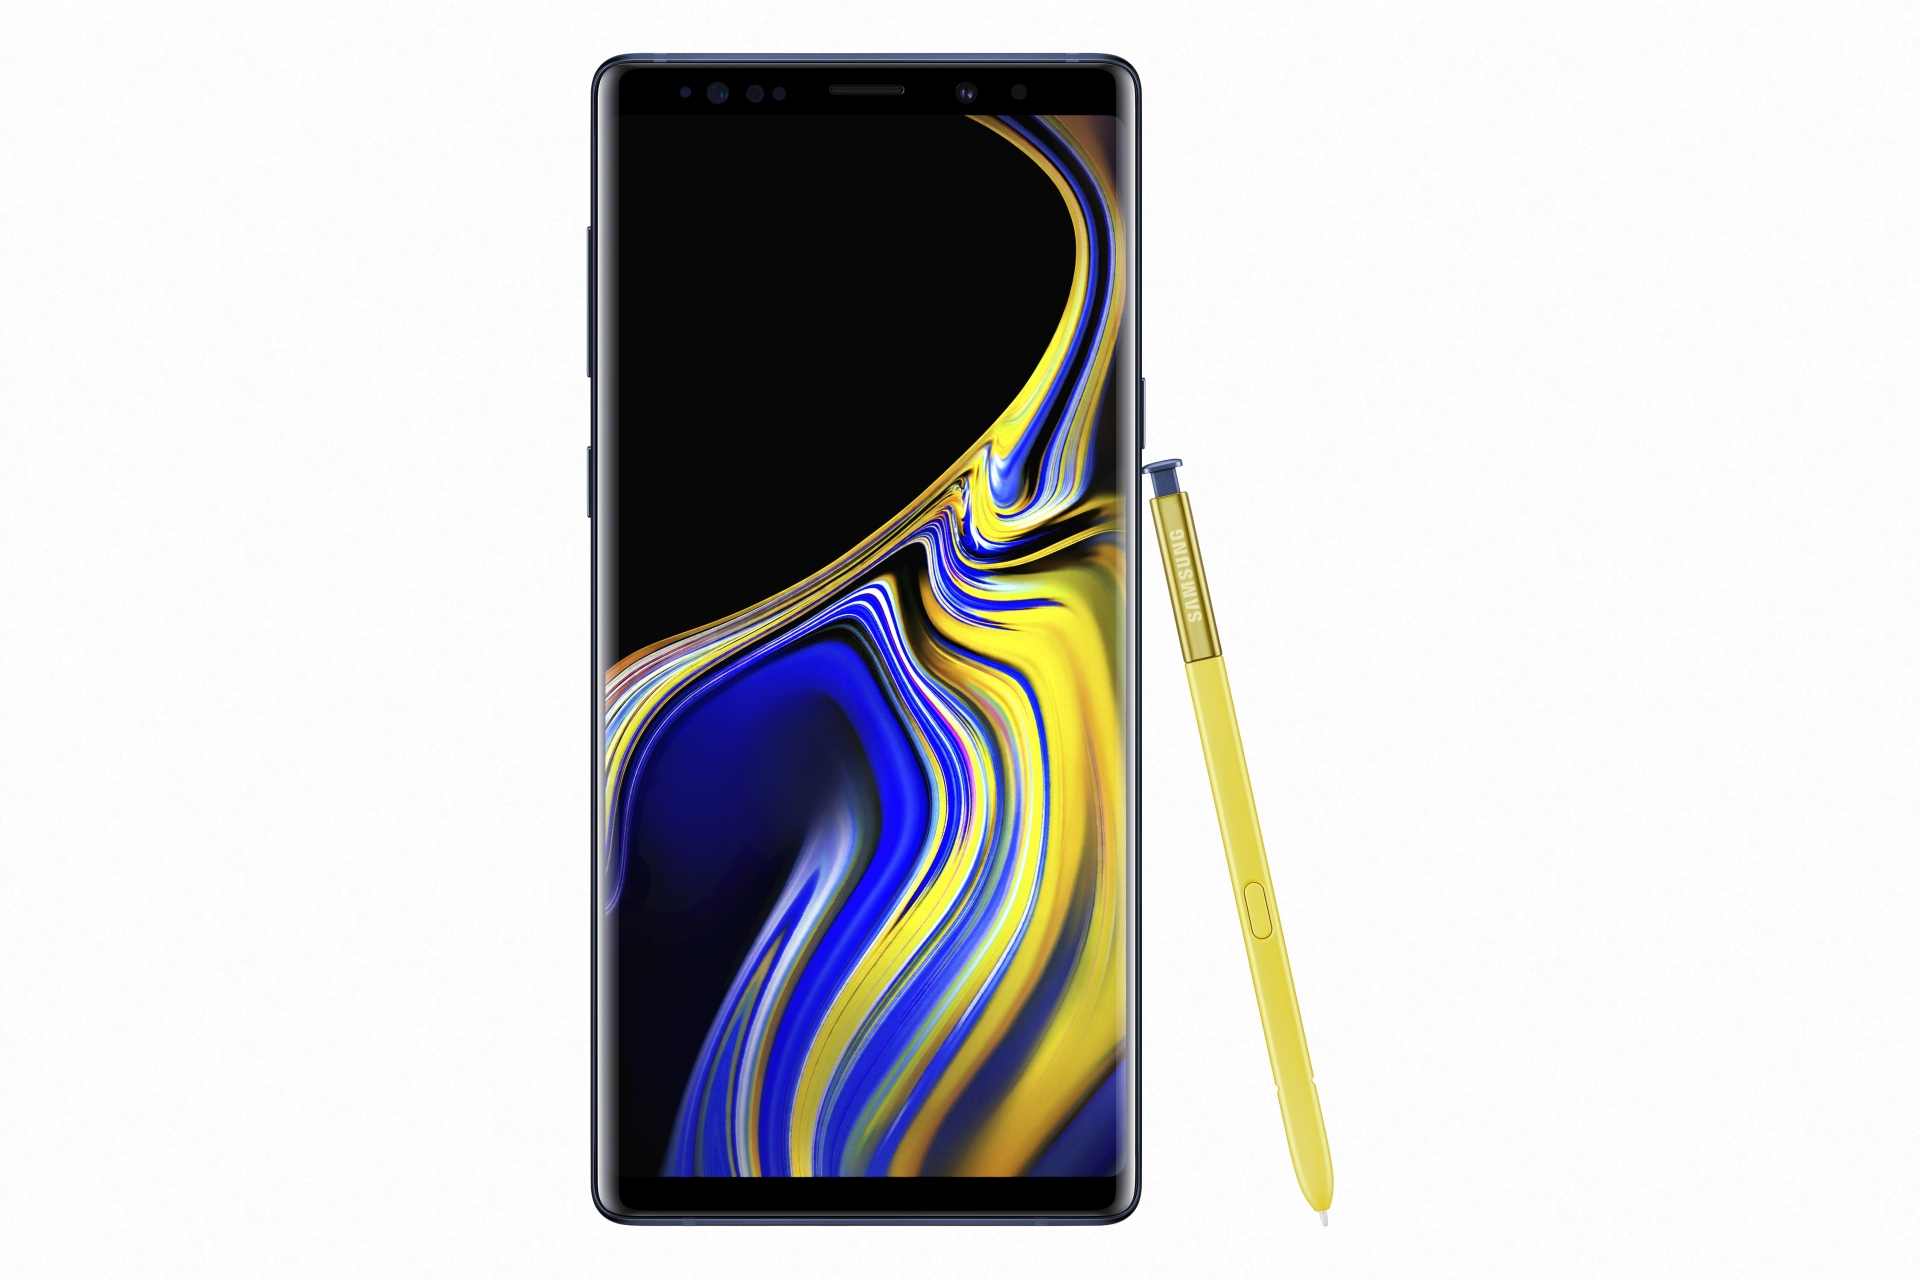 Samsung Galaxy Note 9 review: Hands-on impressions of the new phone